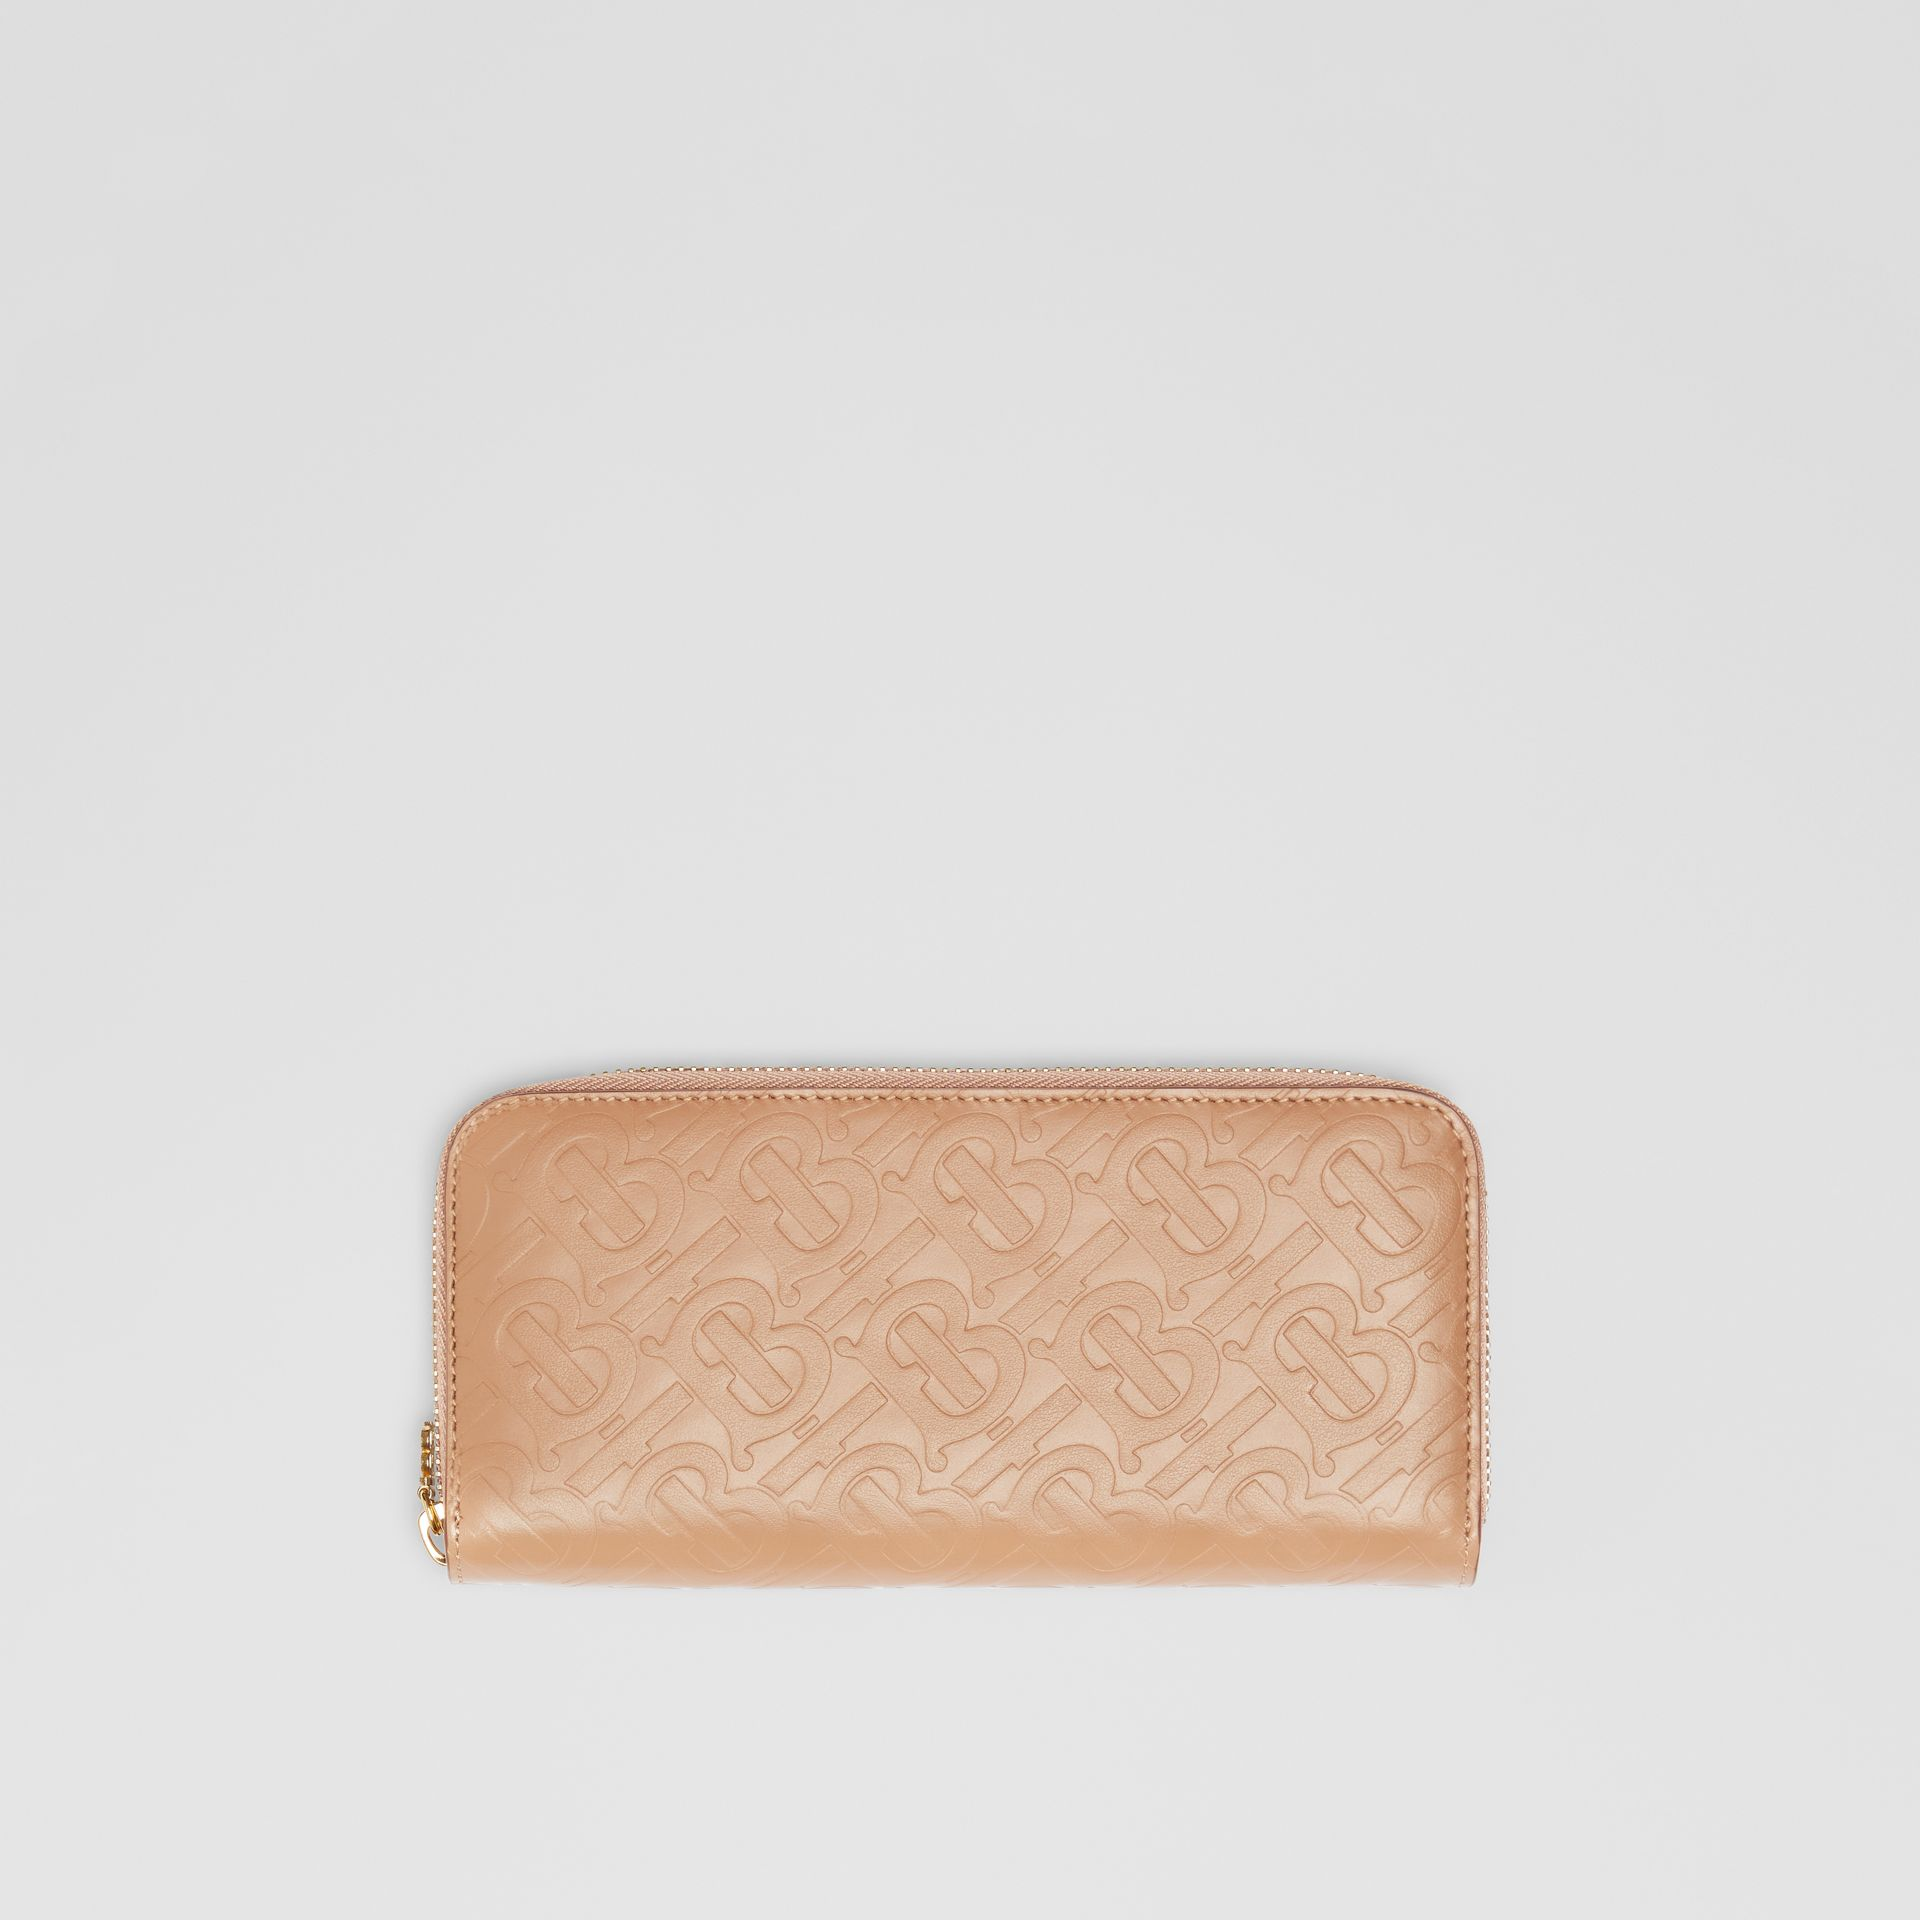 Monogram Leather Ziparound Wallet in Light Camel - Women | Burberry - gallery image 0